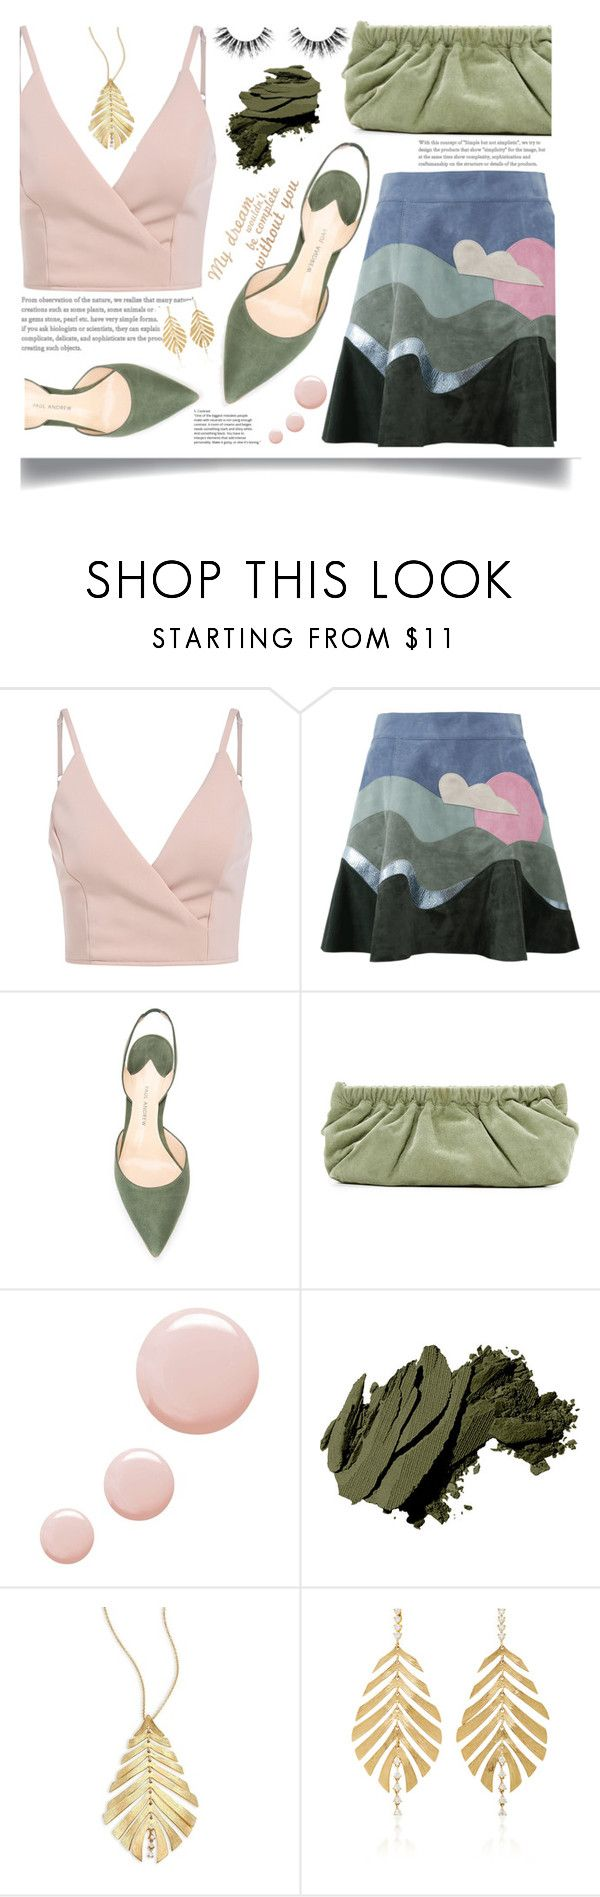 """""""verde musgo"""" by katiacsilva ❤ liked on Polyvore featuring Marc Jacobs, Paul Andrew, Rachel Comey, Topshop, Bobbi Brown Cosmetics, Hueb and Velour Lashes"""